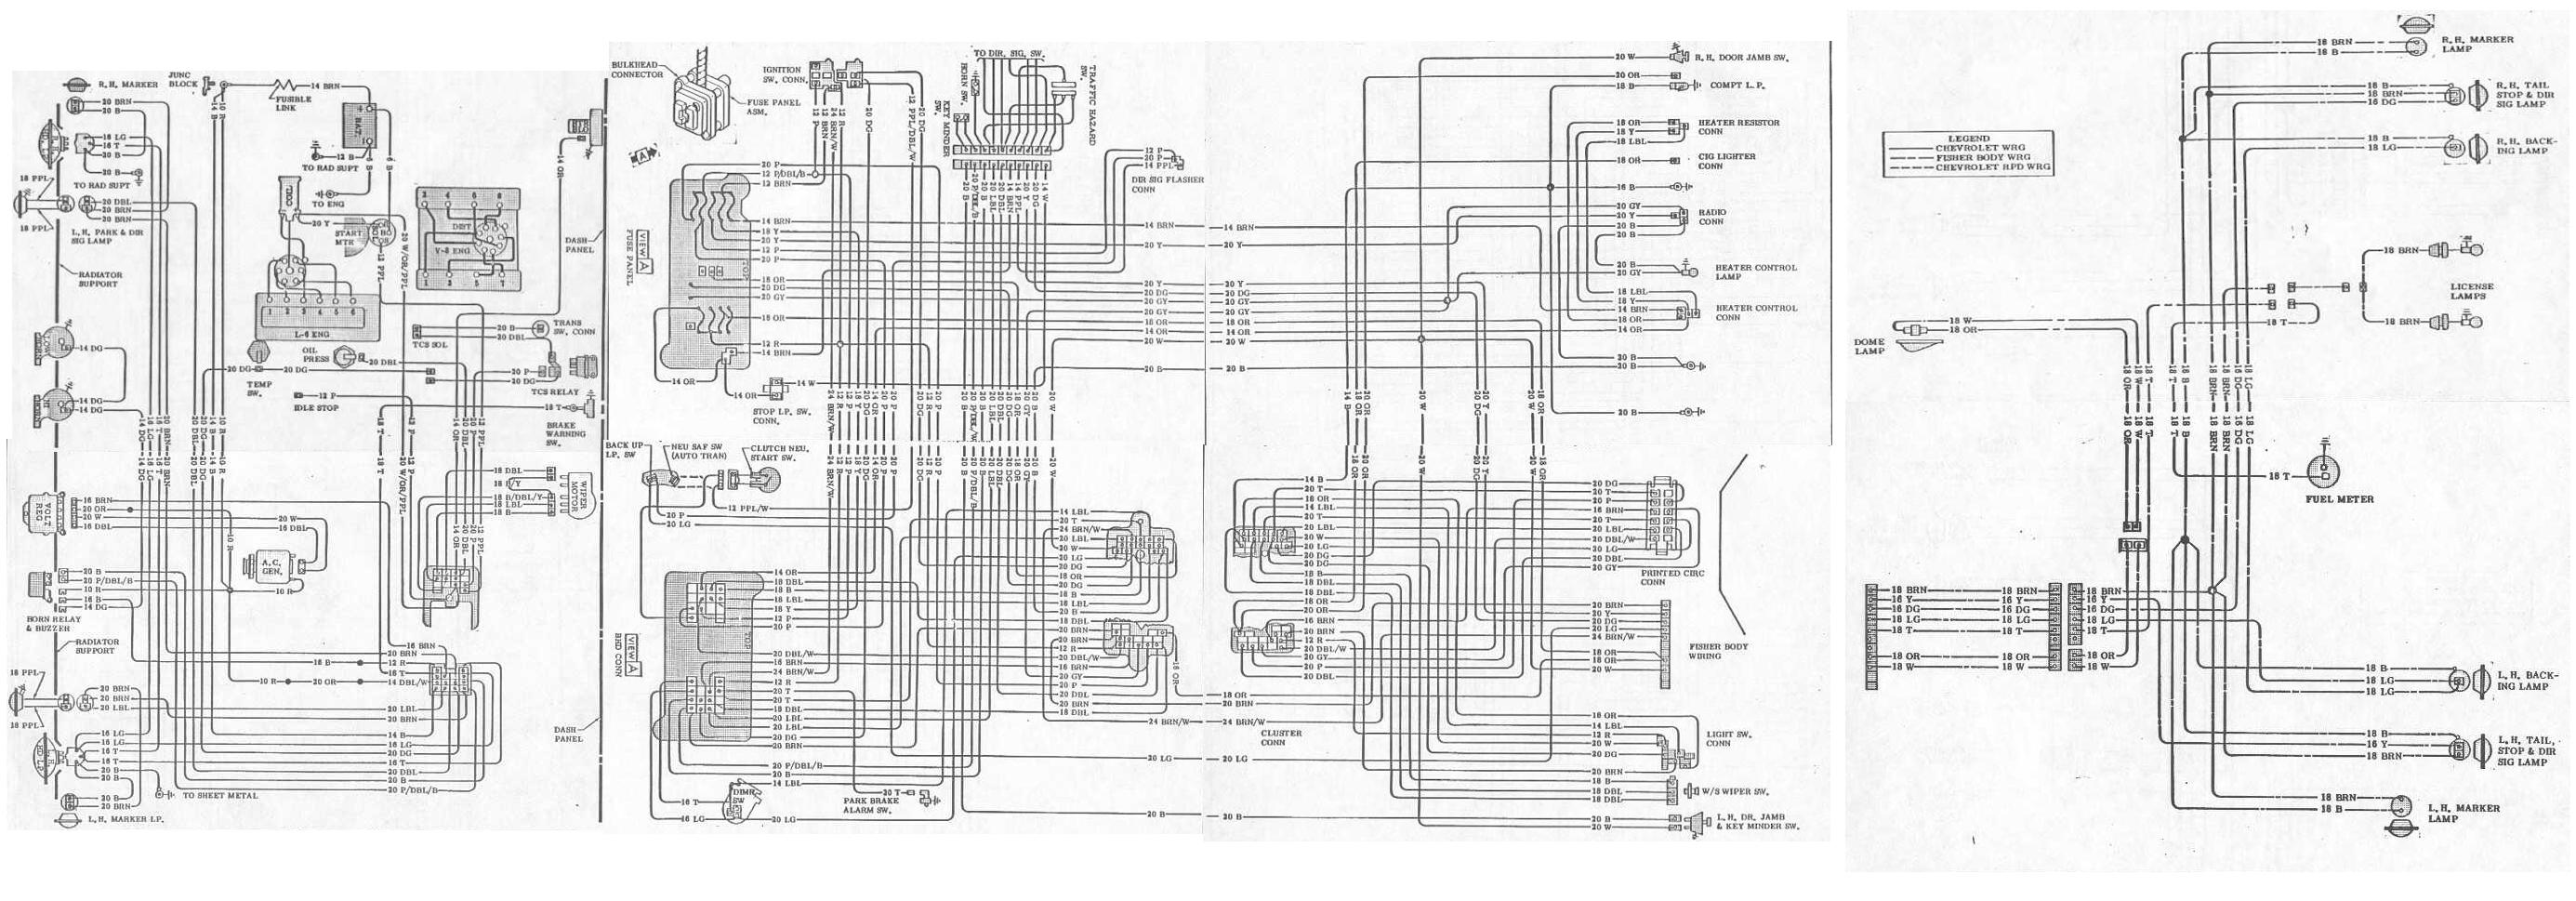 1981 Trans Am Fuse Diagram Example Electrical Wiring Diagram \u2022 79  Pontiac Trans AM Blue Fuse Box Diagram 81 Pontiac Trans Am